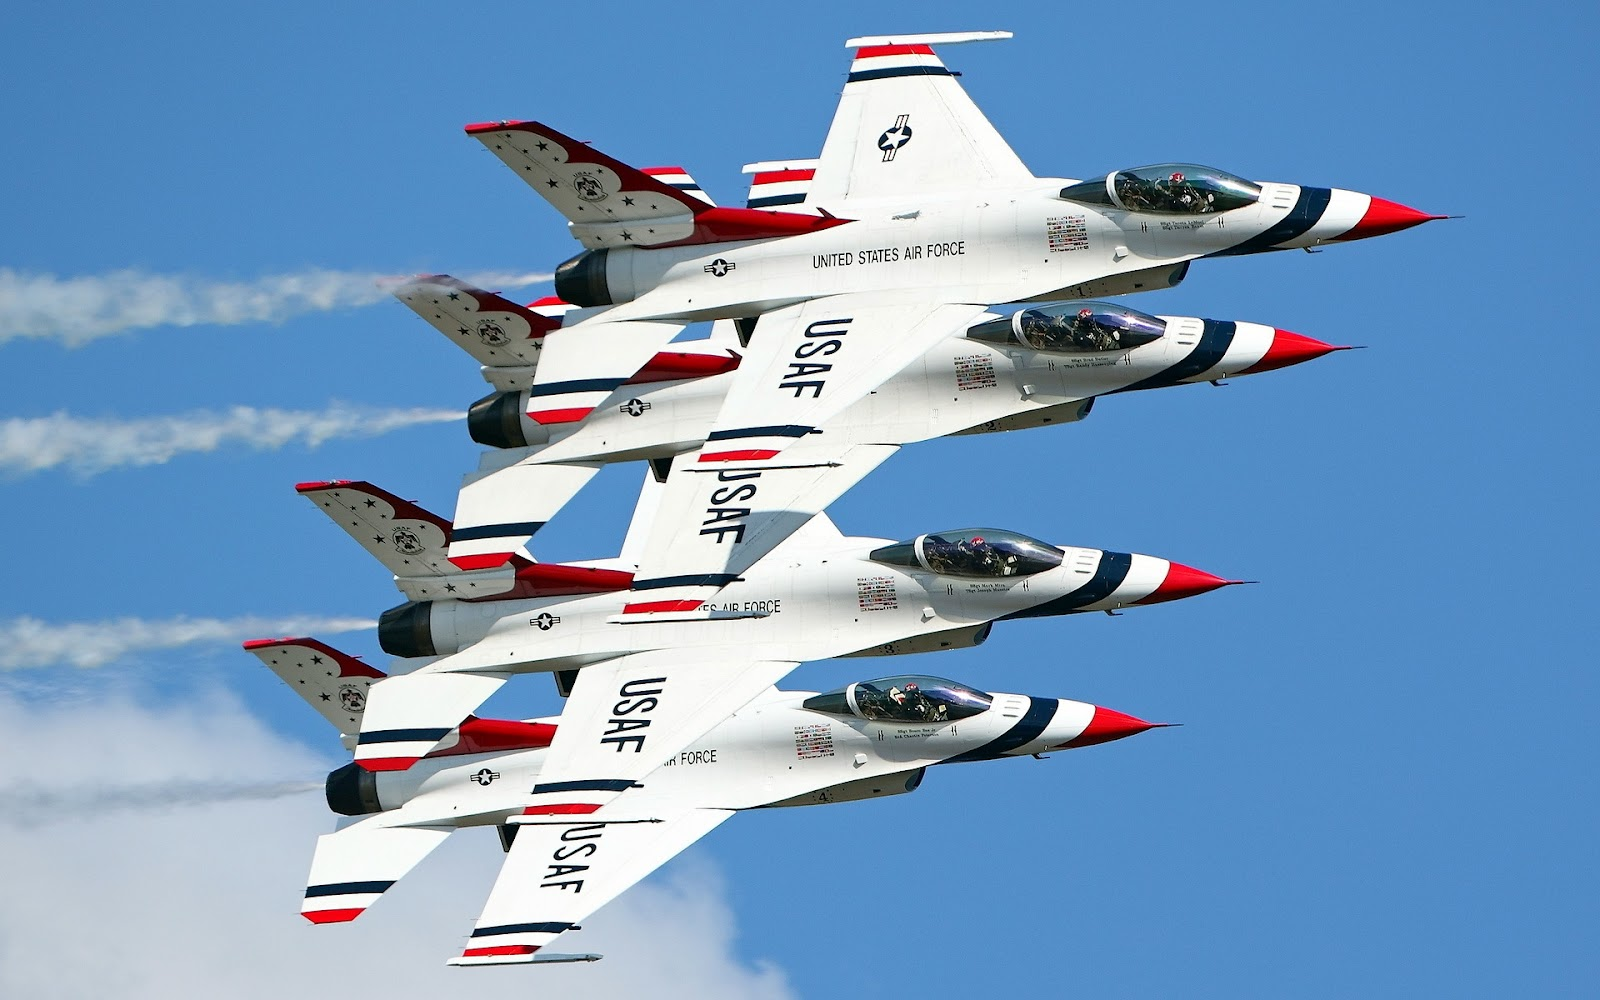 http://2.bp.blogspot.com/-BT-VkEe6Fd8/UGBfET-9lXI/AAAAAAAAoJI/G18Q7z8r4qY/s1600/F-16-Fighting-Falcon-Wallpapers.jpg